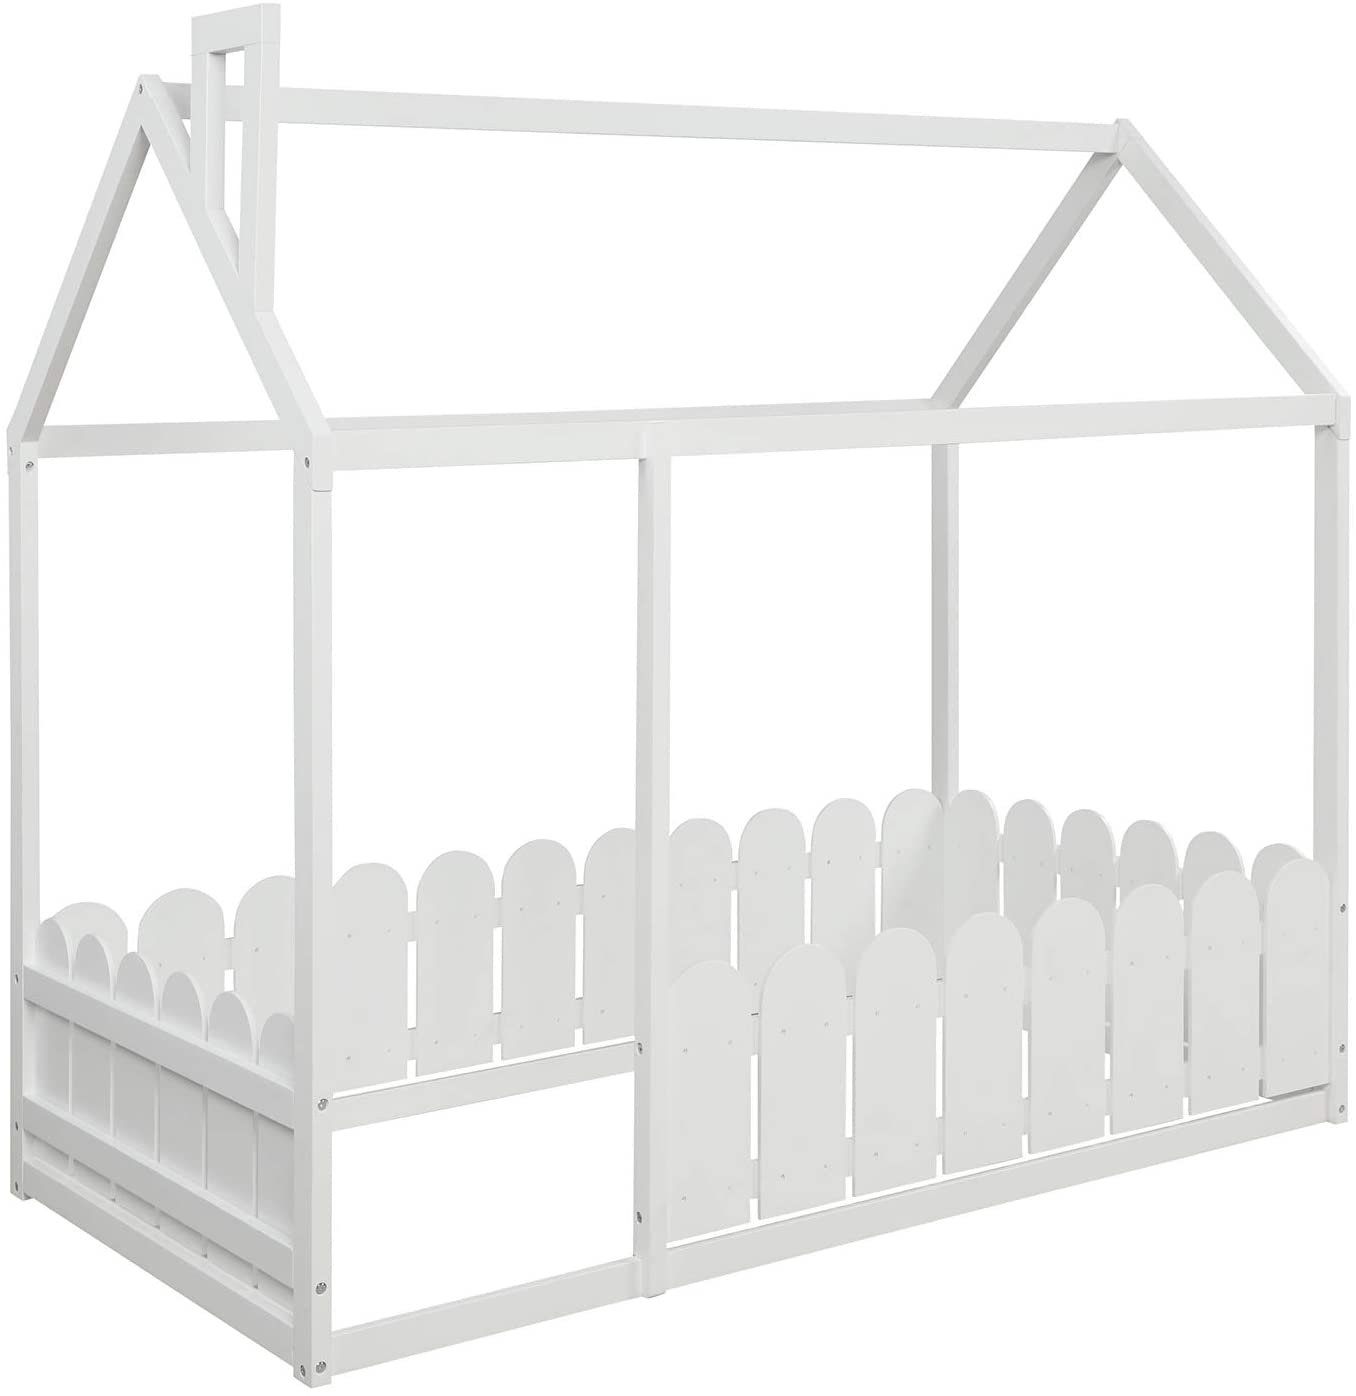 Wood House Bed Kids Cabin overseas Frame Fence Princess Roof with and Industry No. 1